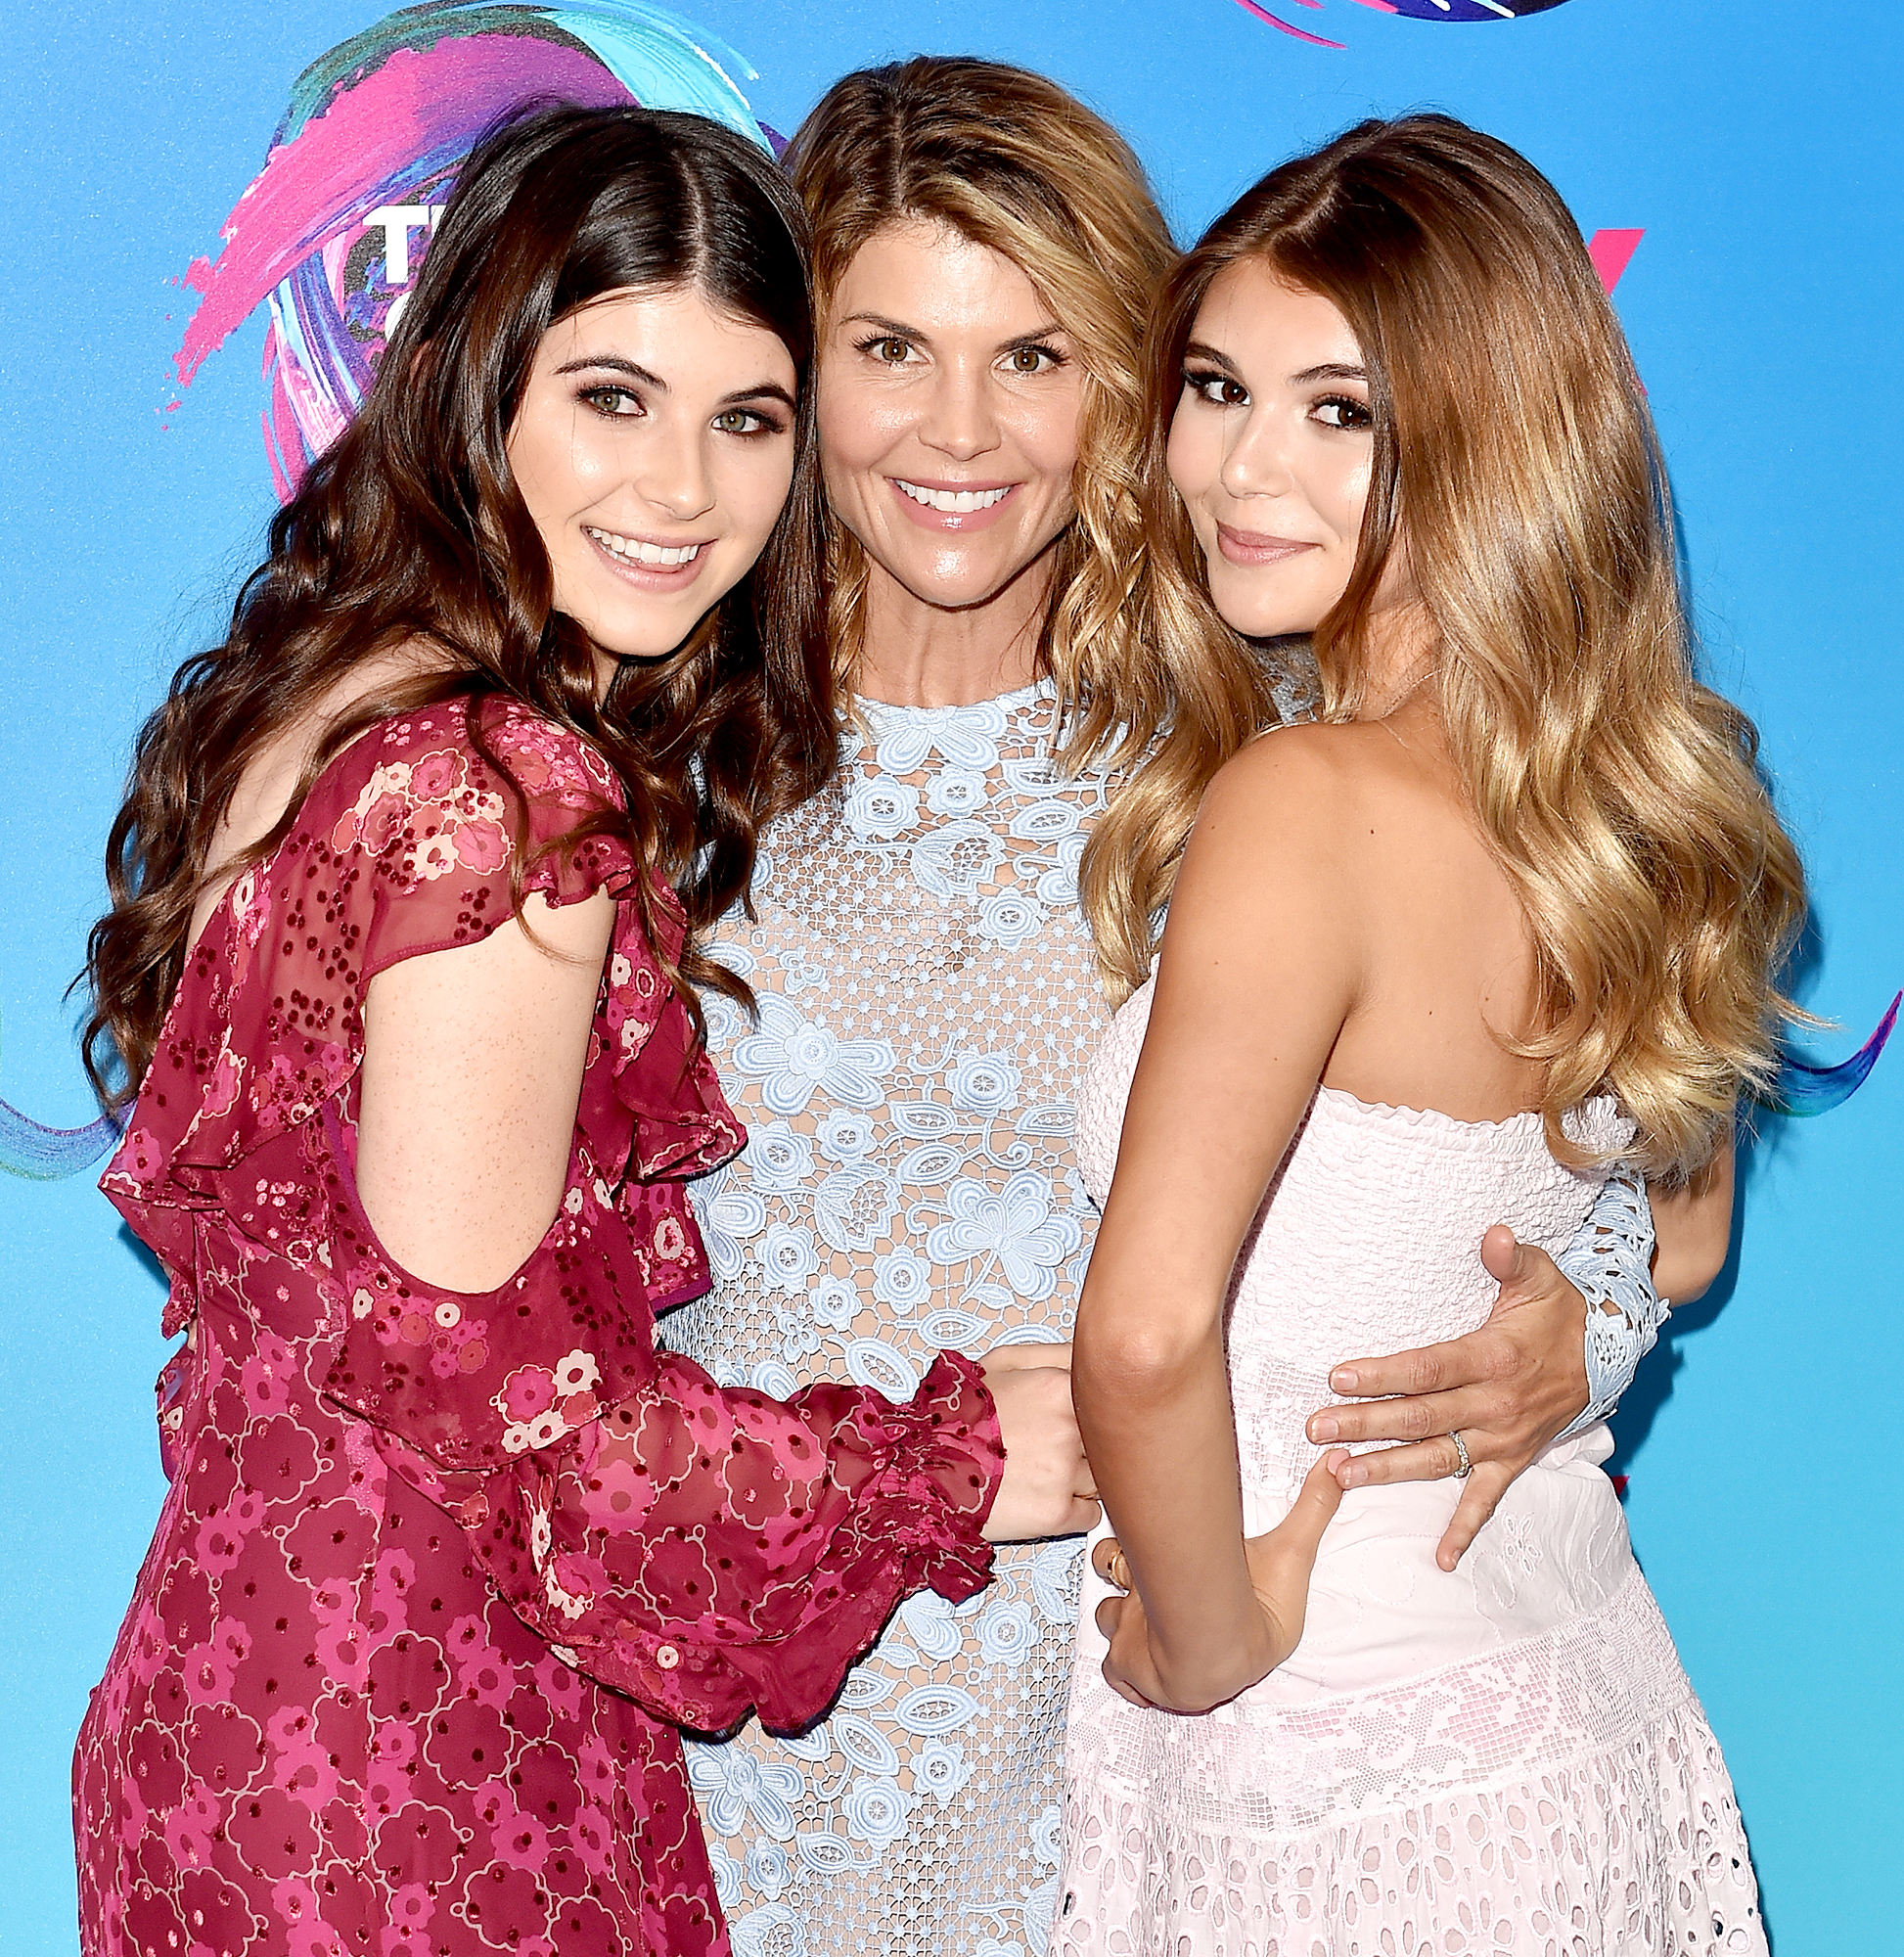 Lori-Loughlin-Said-She-Wasn't-Her-Daughters'-'Friend'-Before-Scandal